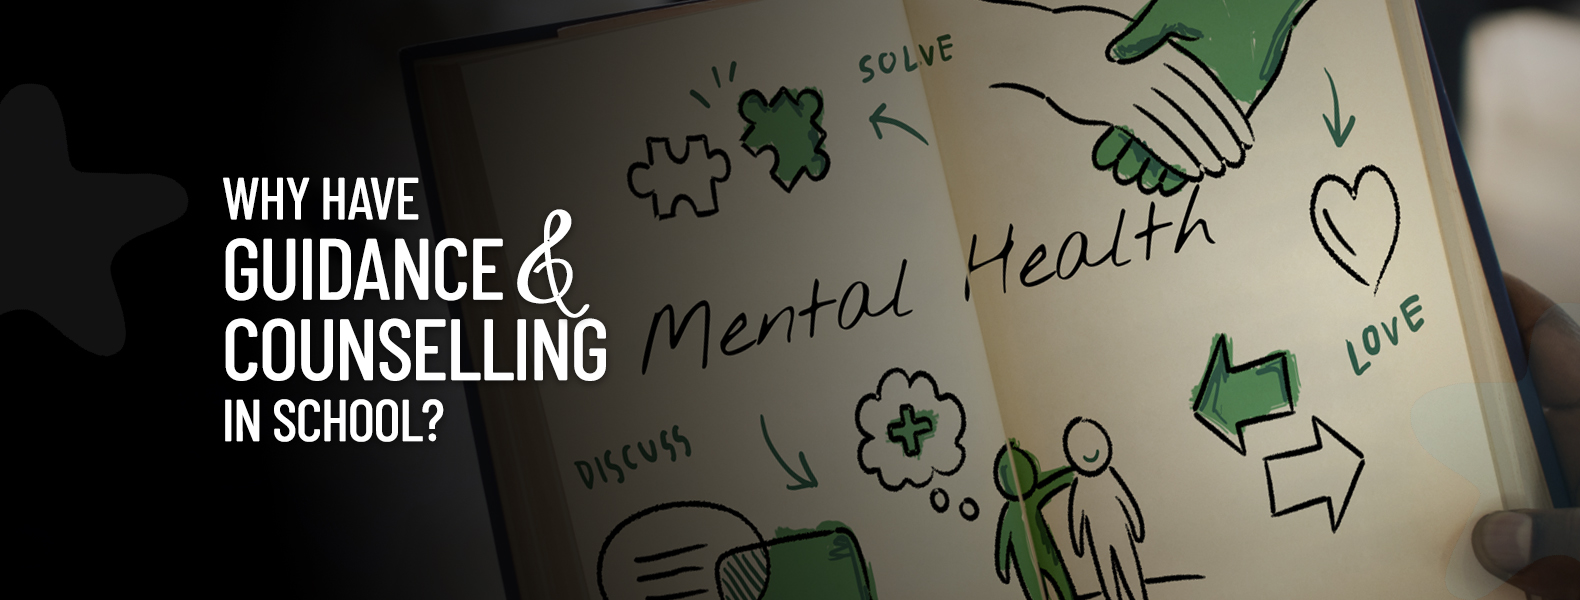 why have Guidance and counselling in school?